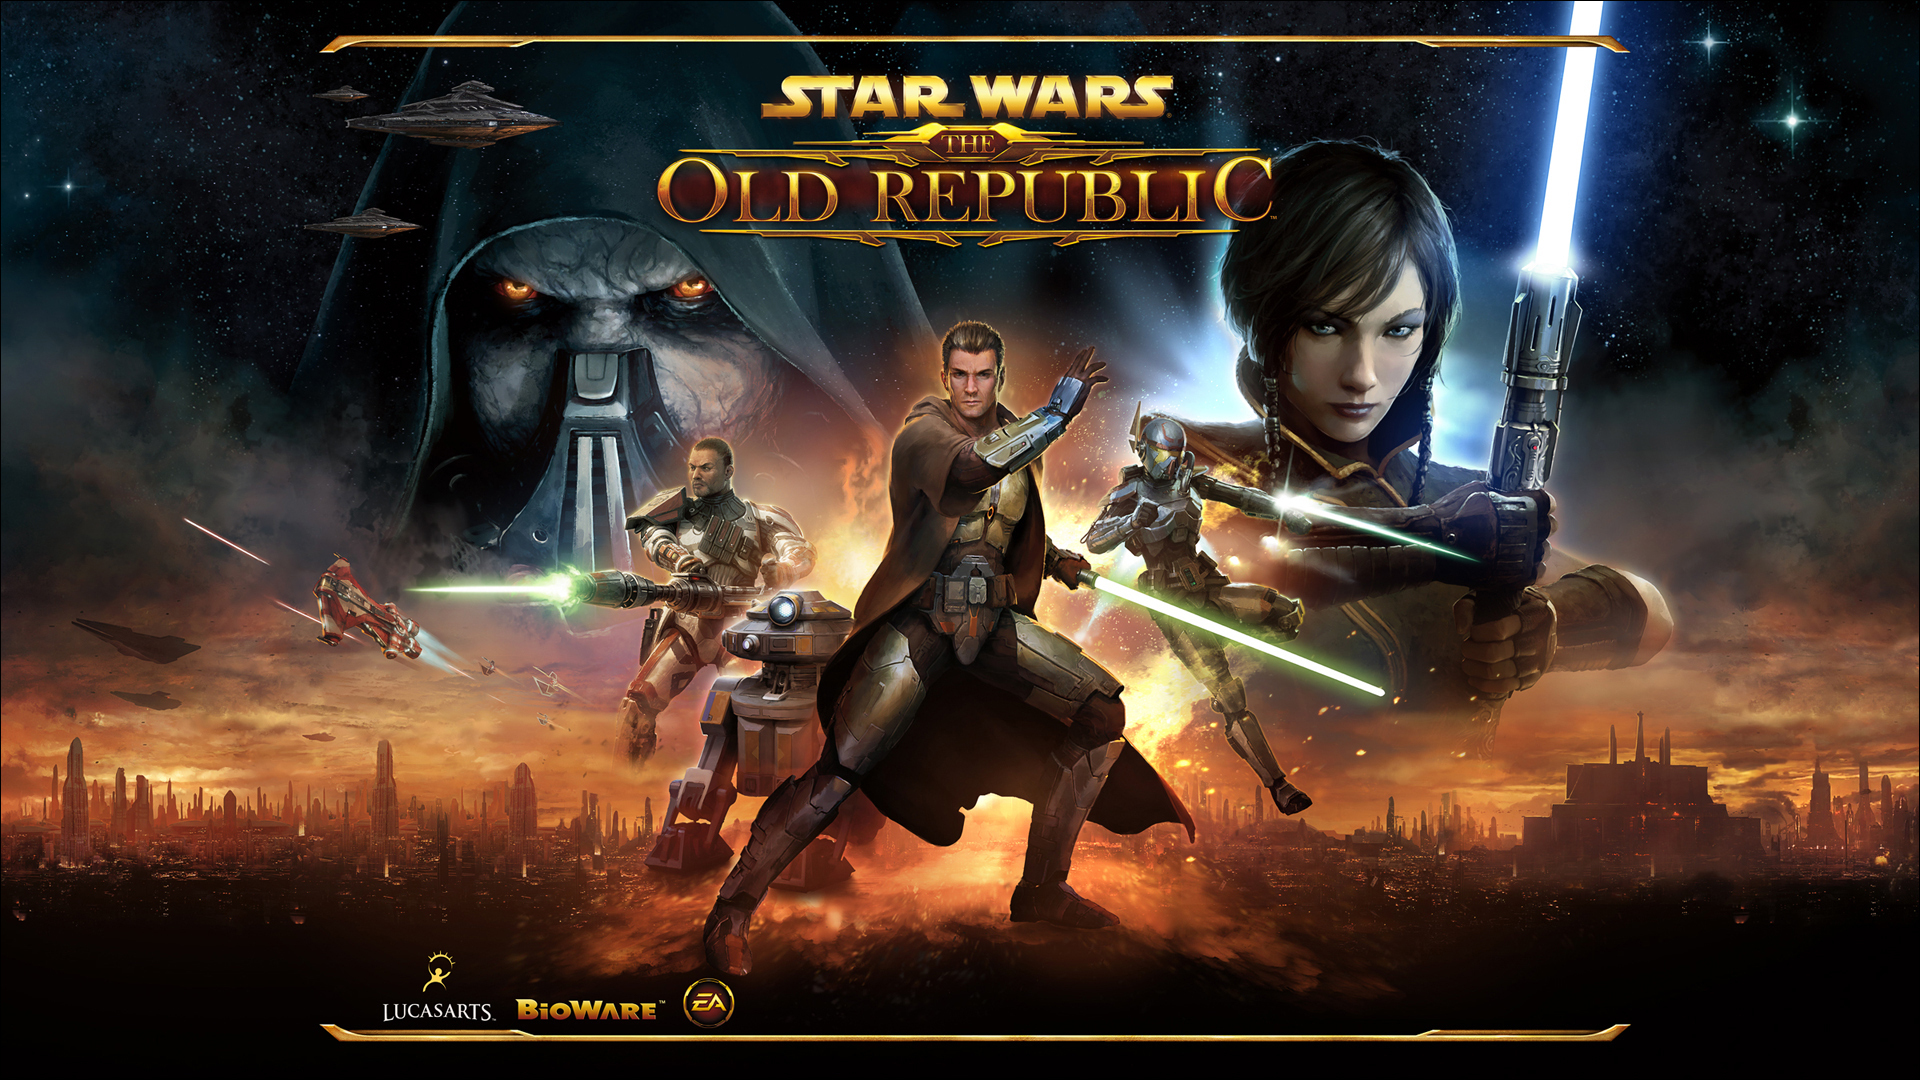 Star Wars Old Republic 66